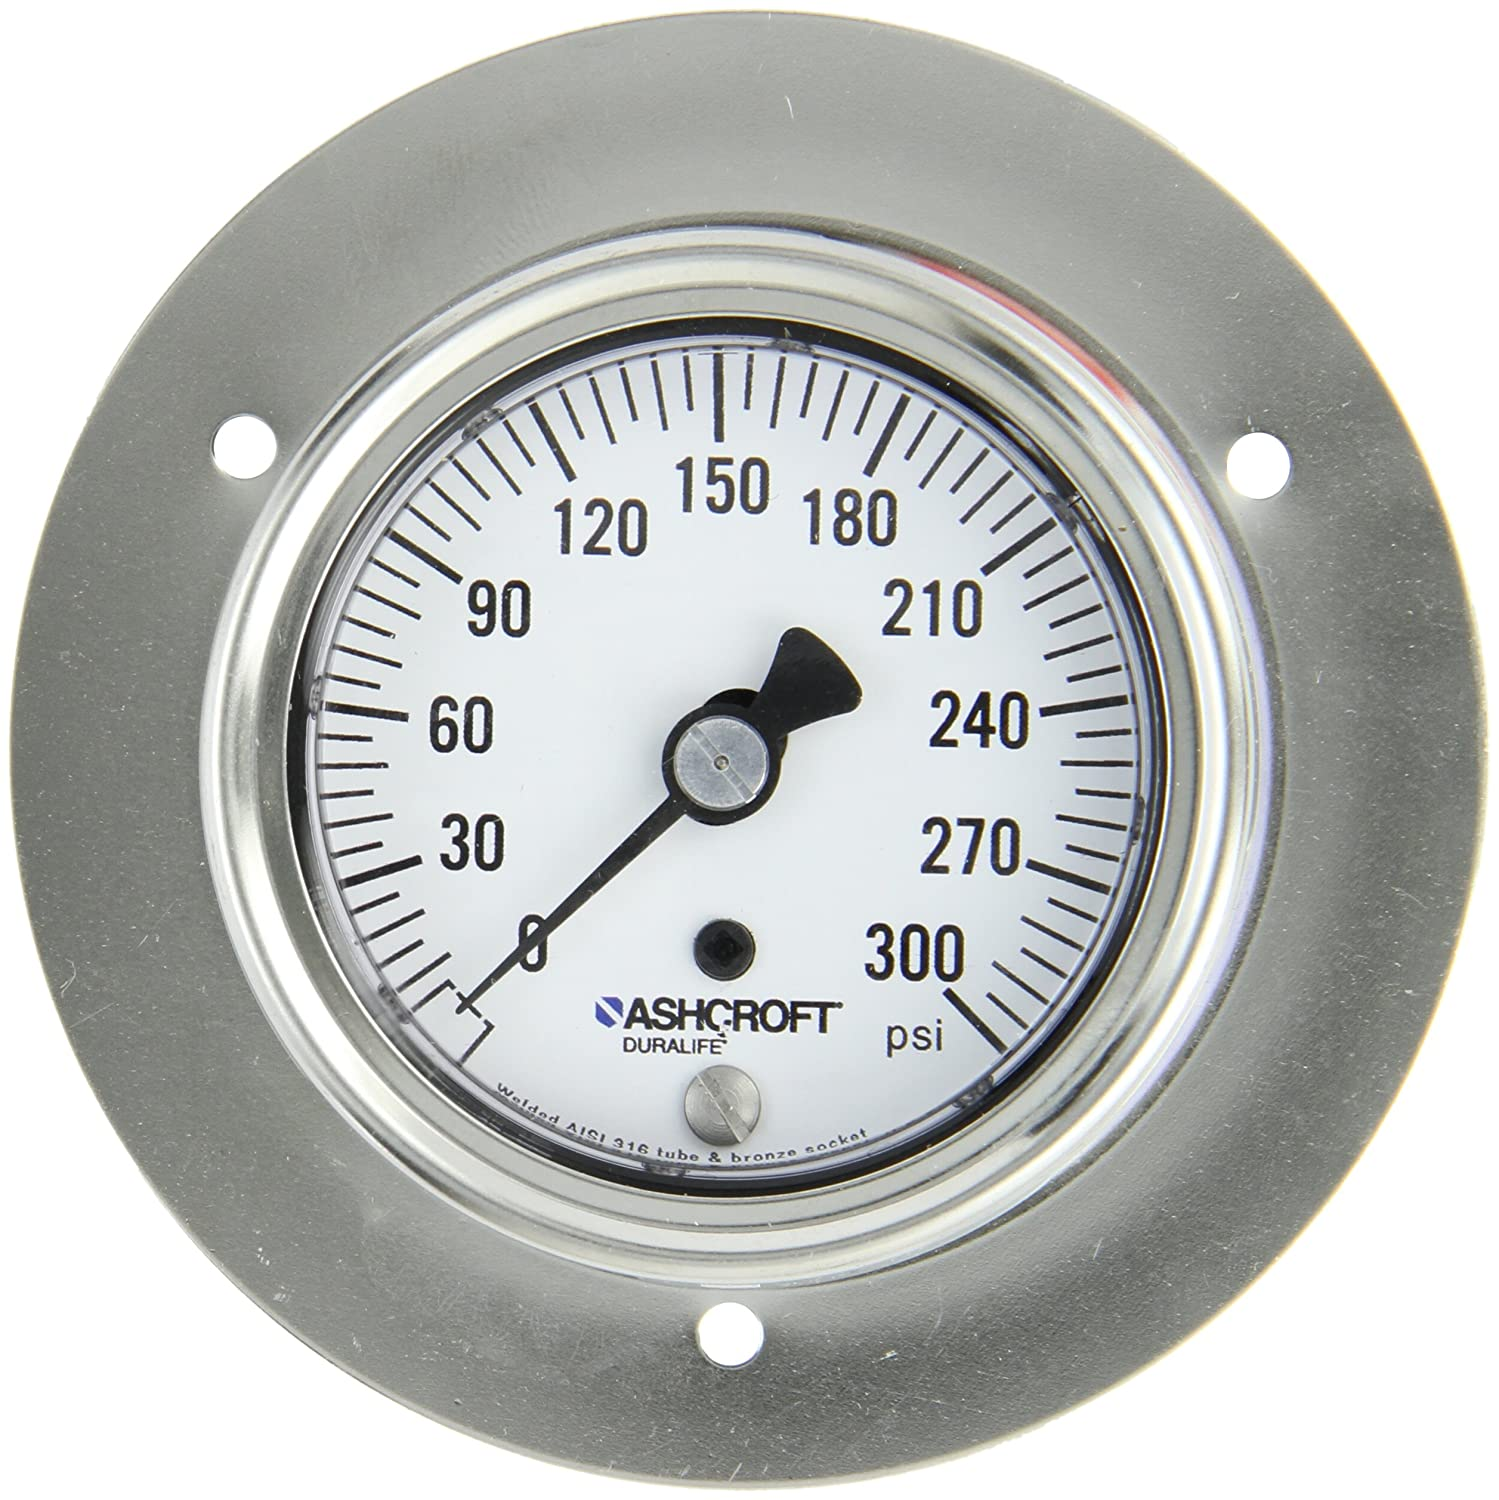 ASHCROFT Duralife Type 1009 Stainless Steel Case Dry Filled Pressure Gauge 2.5 Dial Size Back Flange Mounting Stainless Steel Tube and Bronze Socket 1//4 NPT Lower Back Connection 0//300 psi Pressure Range 2.5 Dial Size 1//4 NPT Lower Back Connection